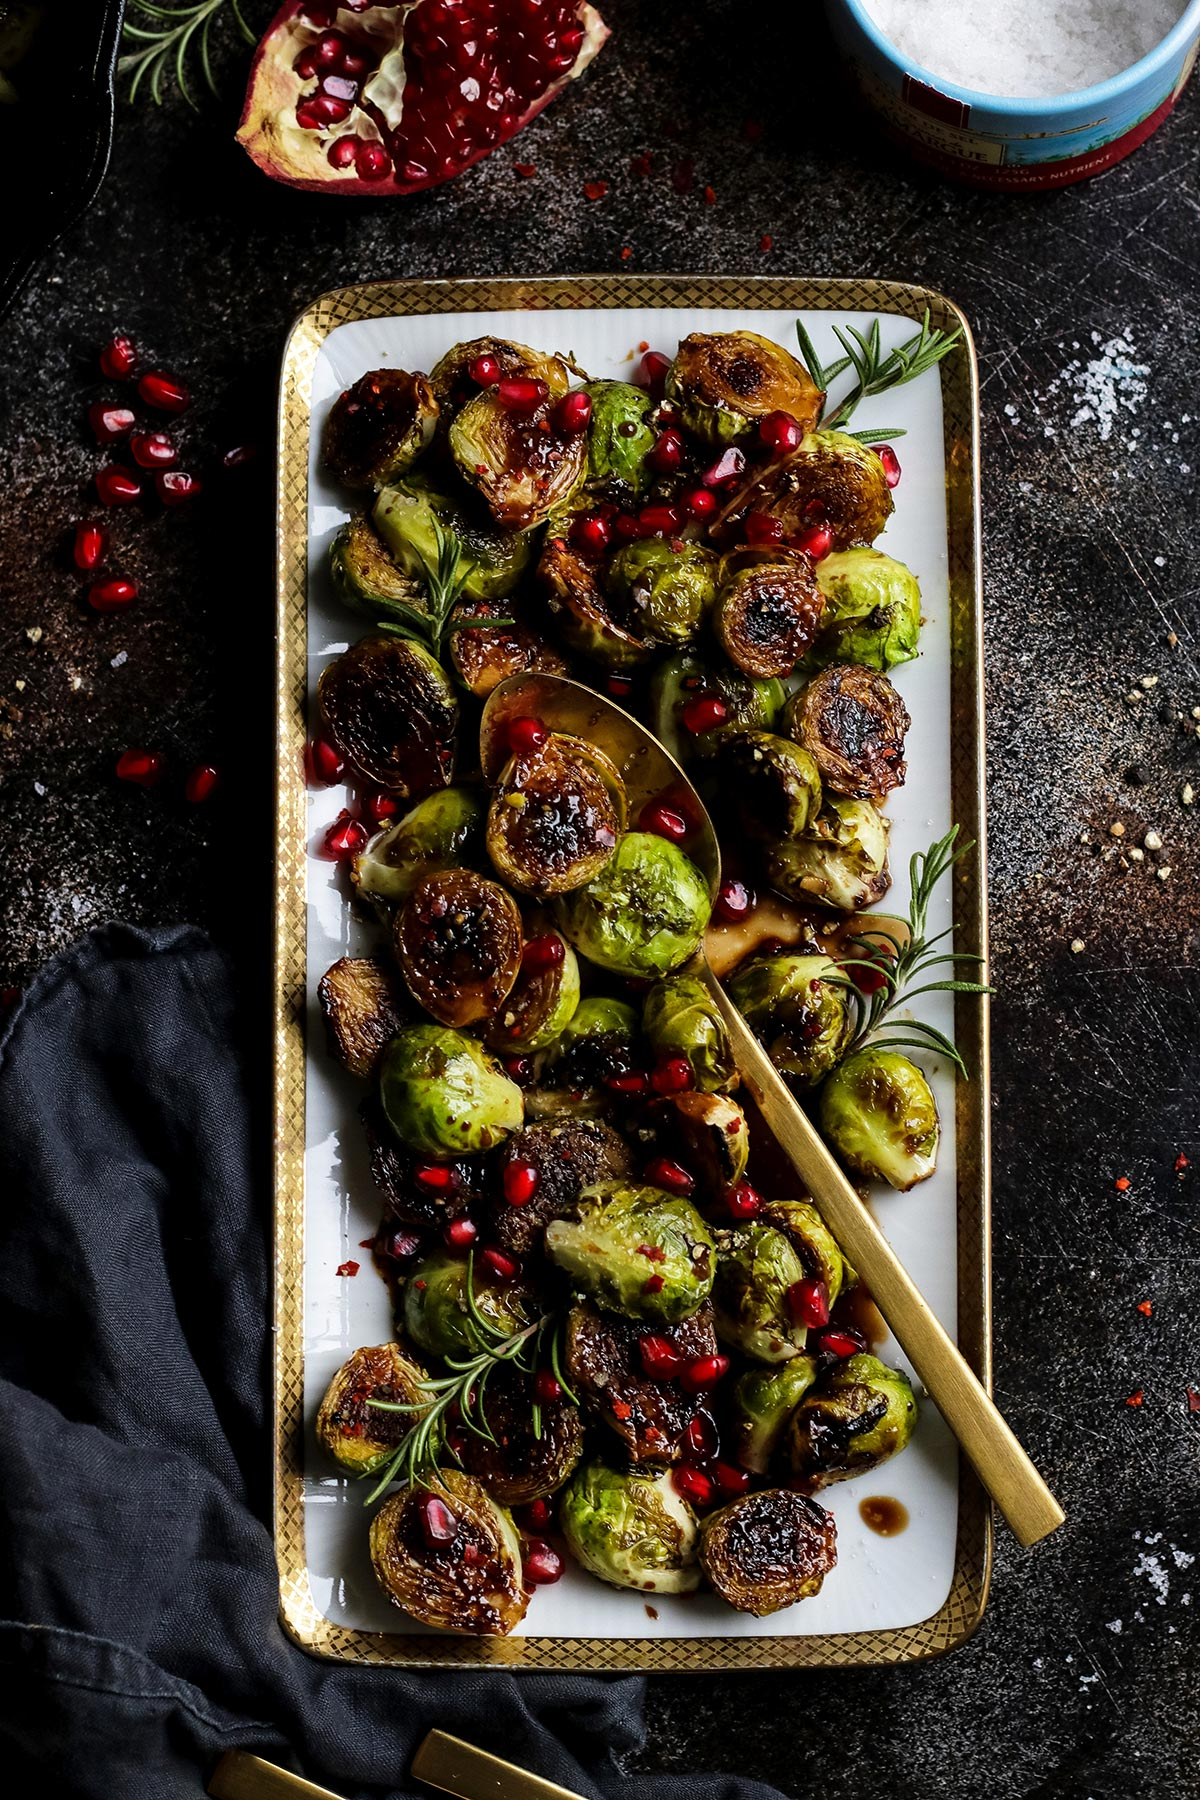 Balsamic Glazed Brussels Sprouts in a Rectangular Serving Dish.